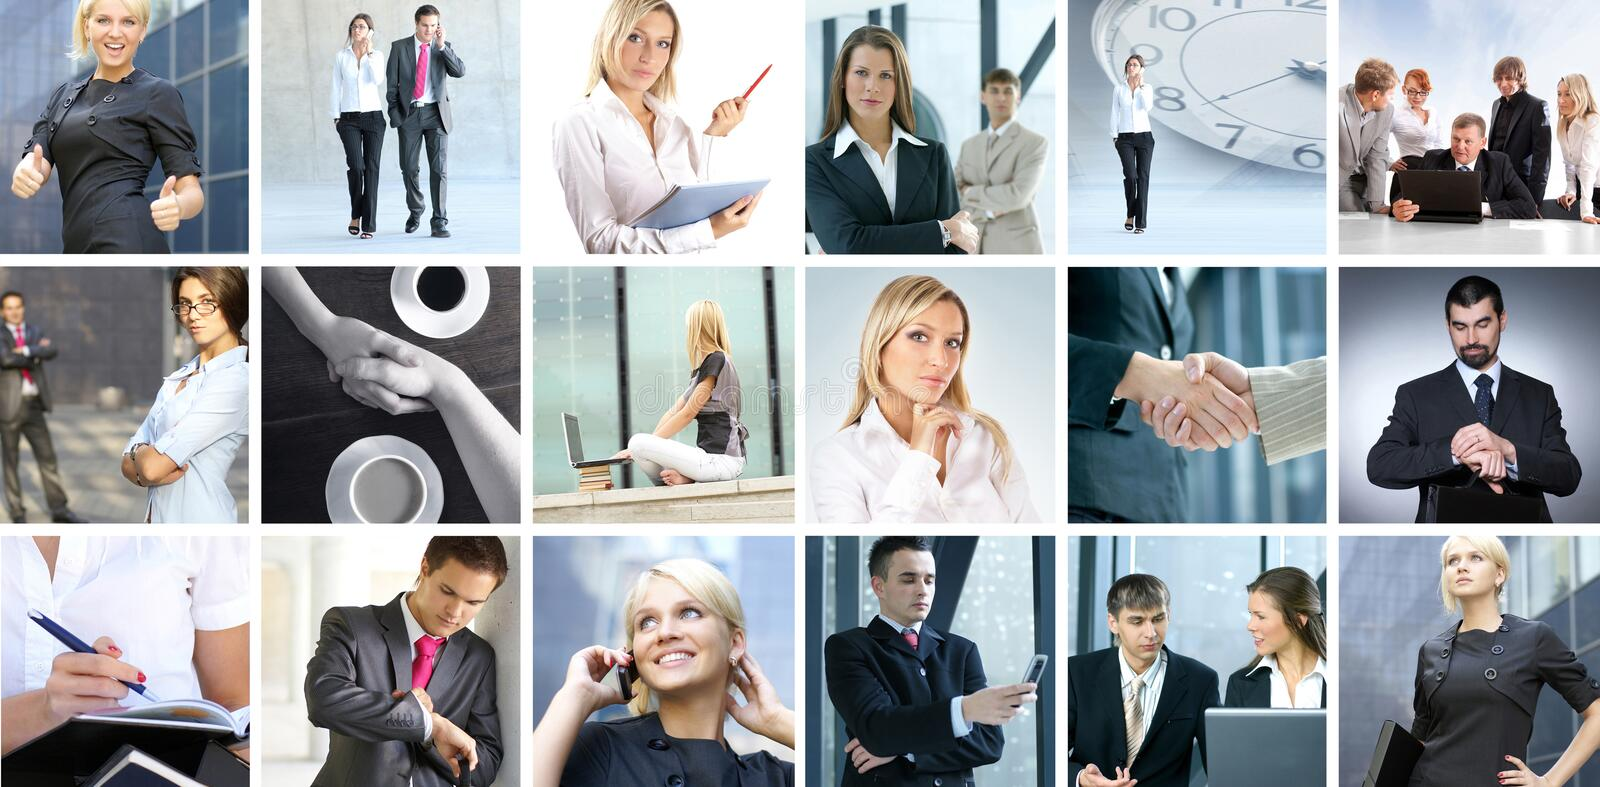 Download Business Collage Of Images With People Stock Image - Image of manager, financial: 65968501